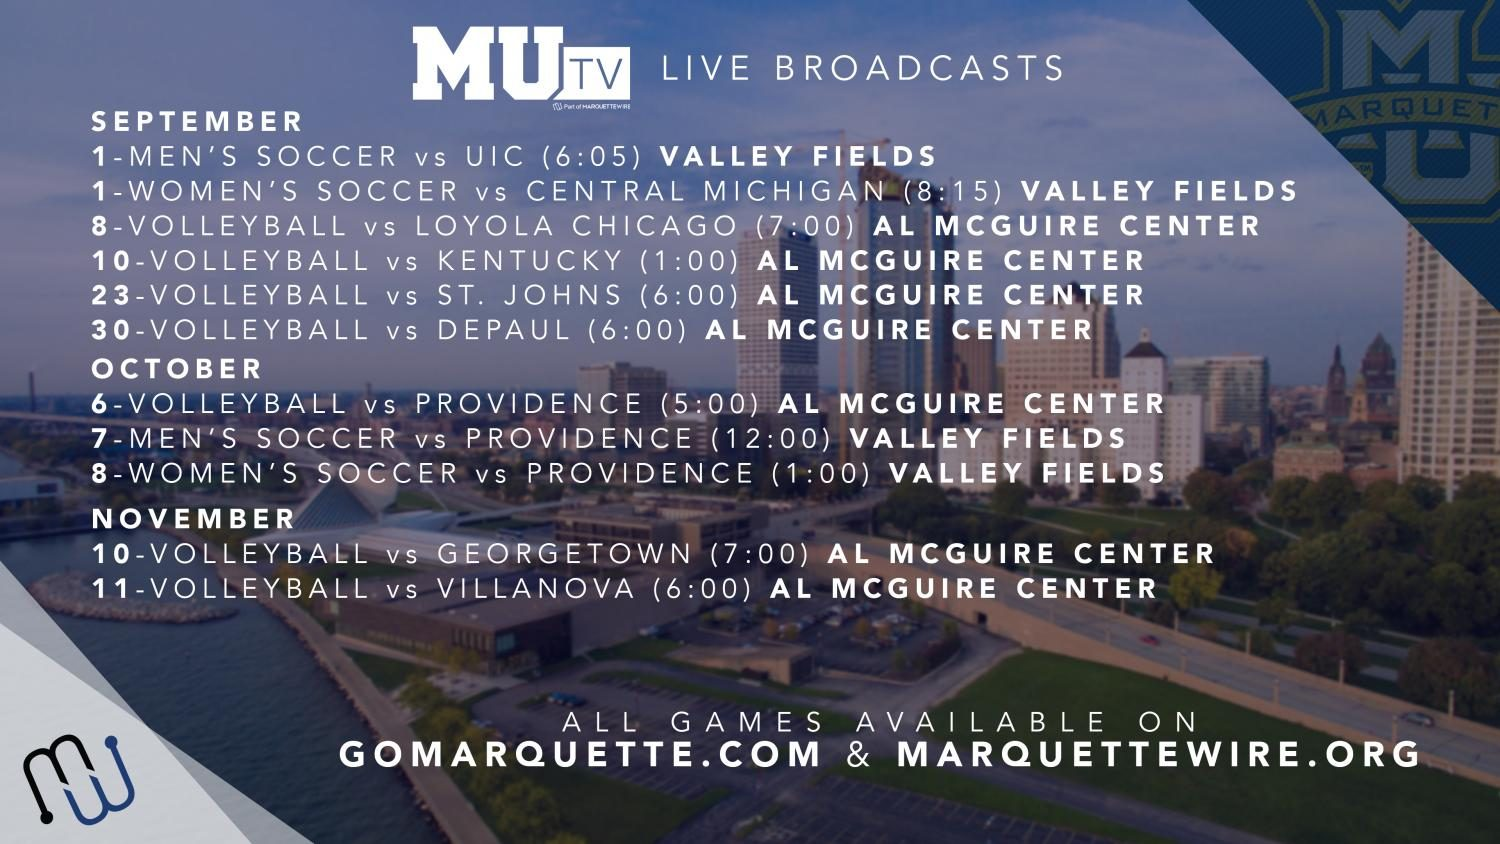 Marquette+Wire+renews+partnership+with+athletics%2C+announces+fall+broadcast+schedule